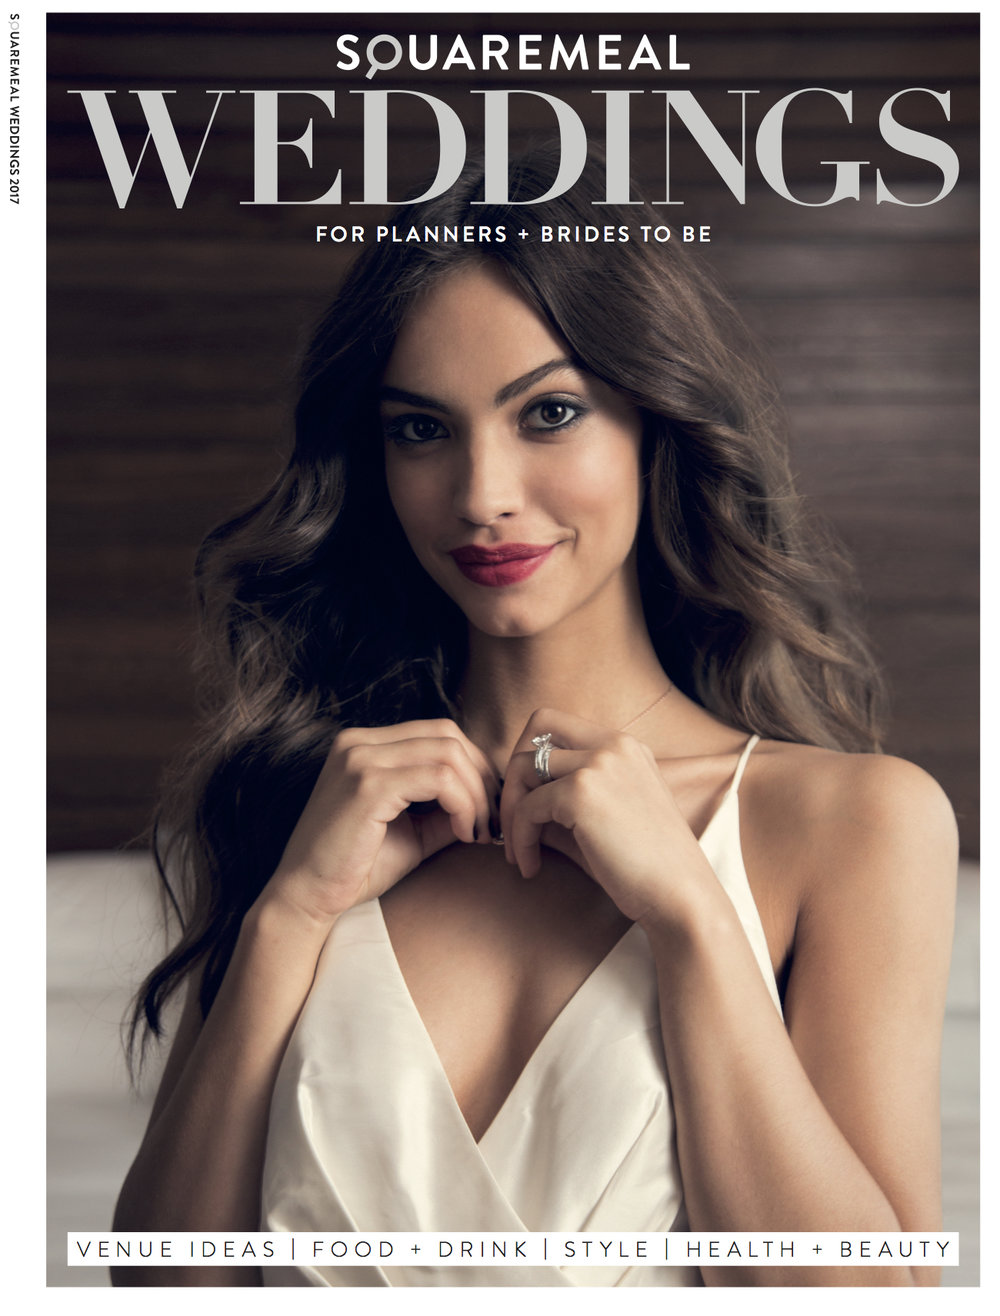 cover SquareMeal Weddings 2017 magazine_cover.jpg